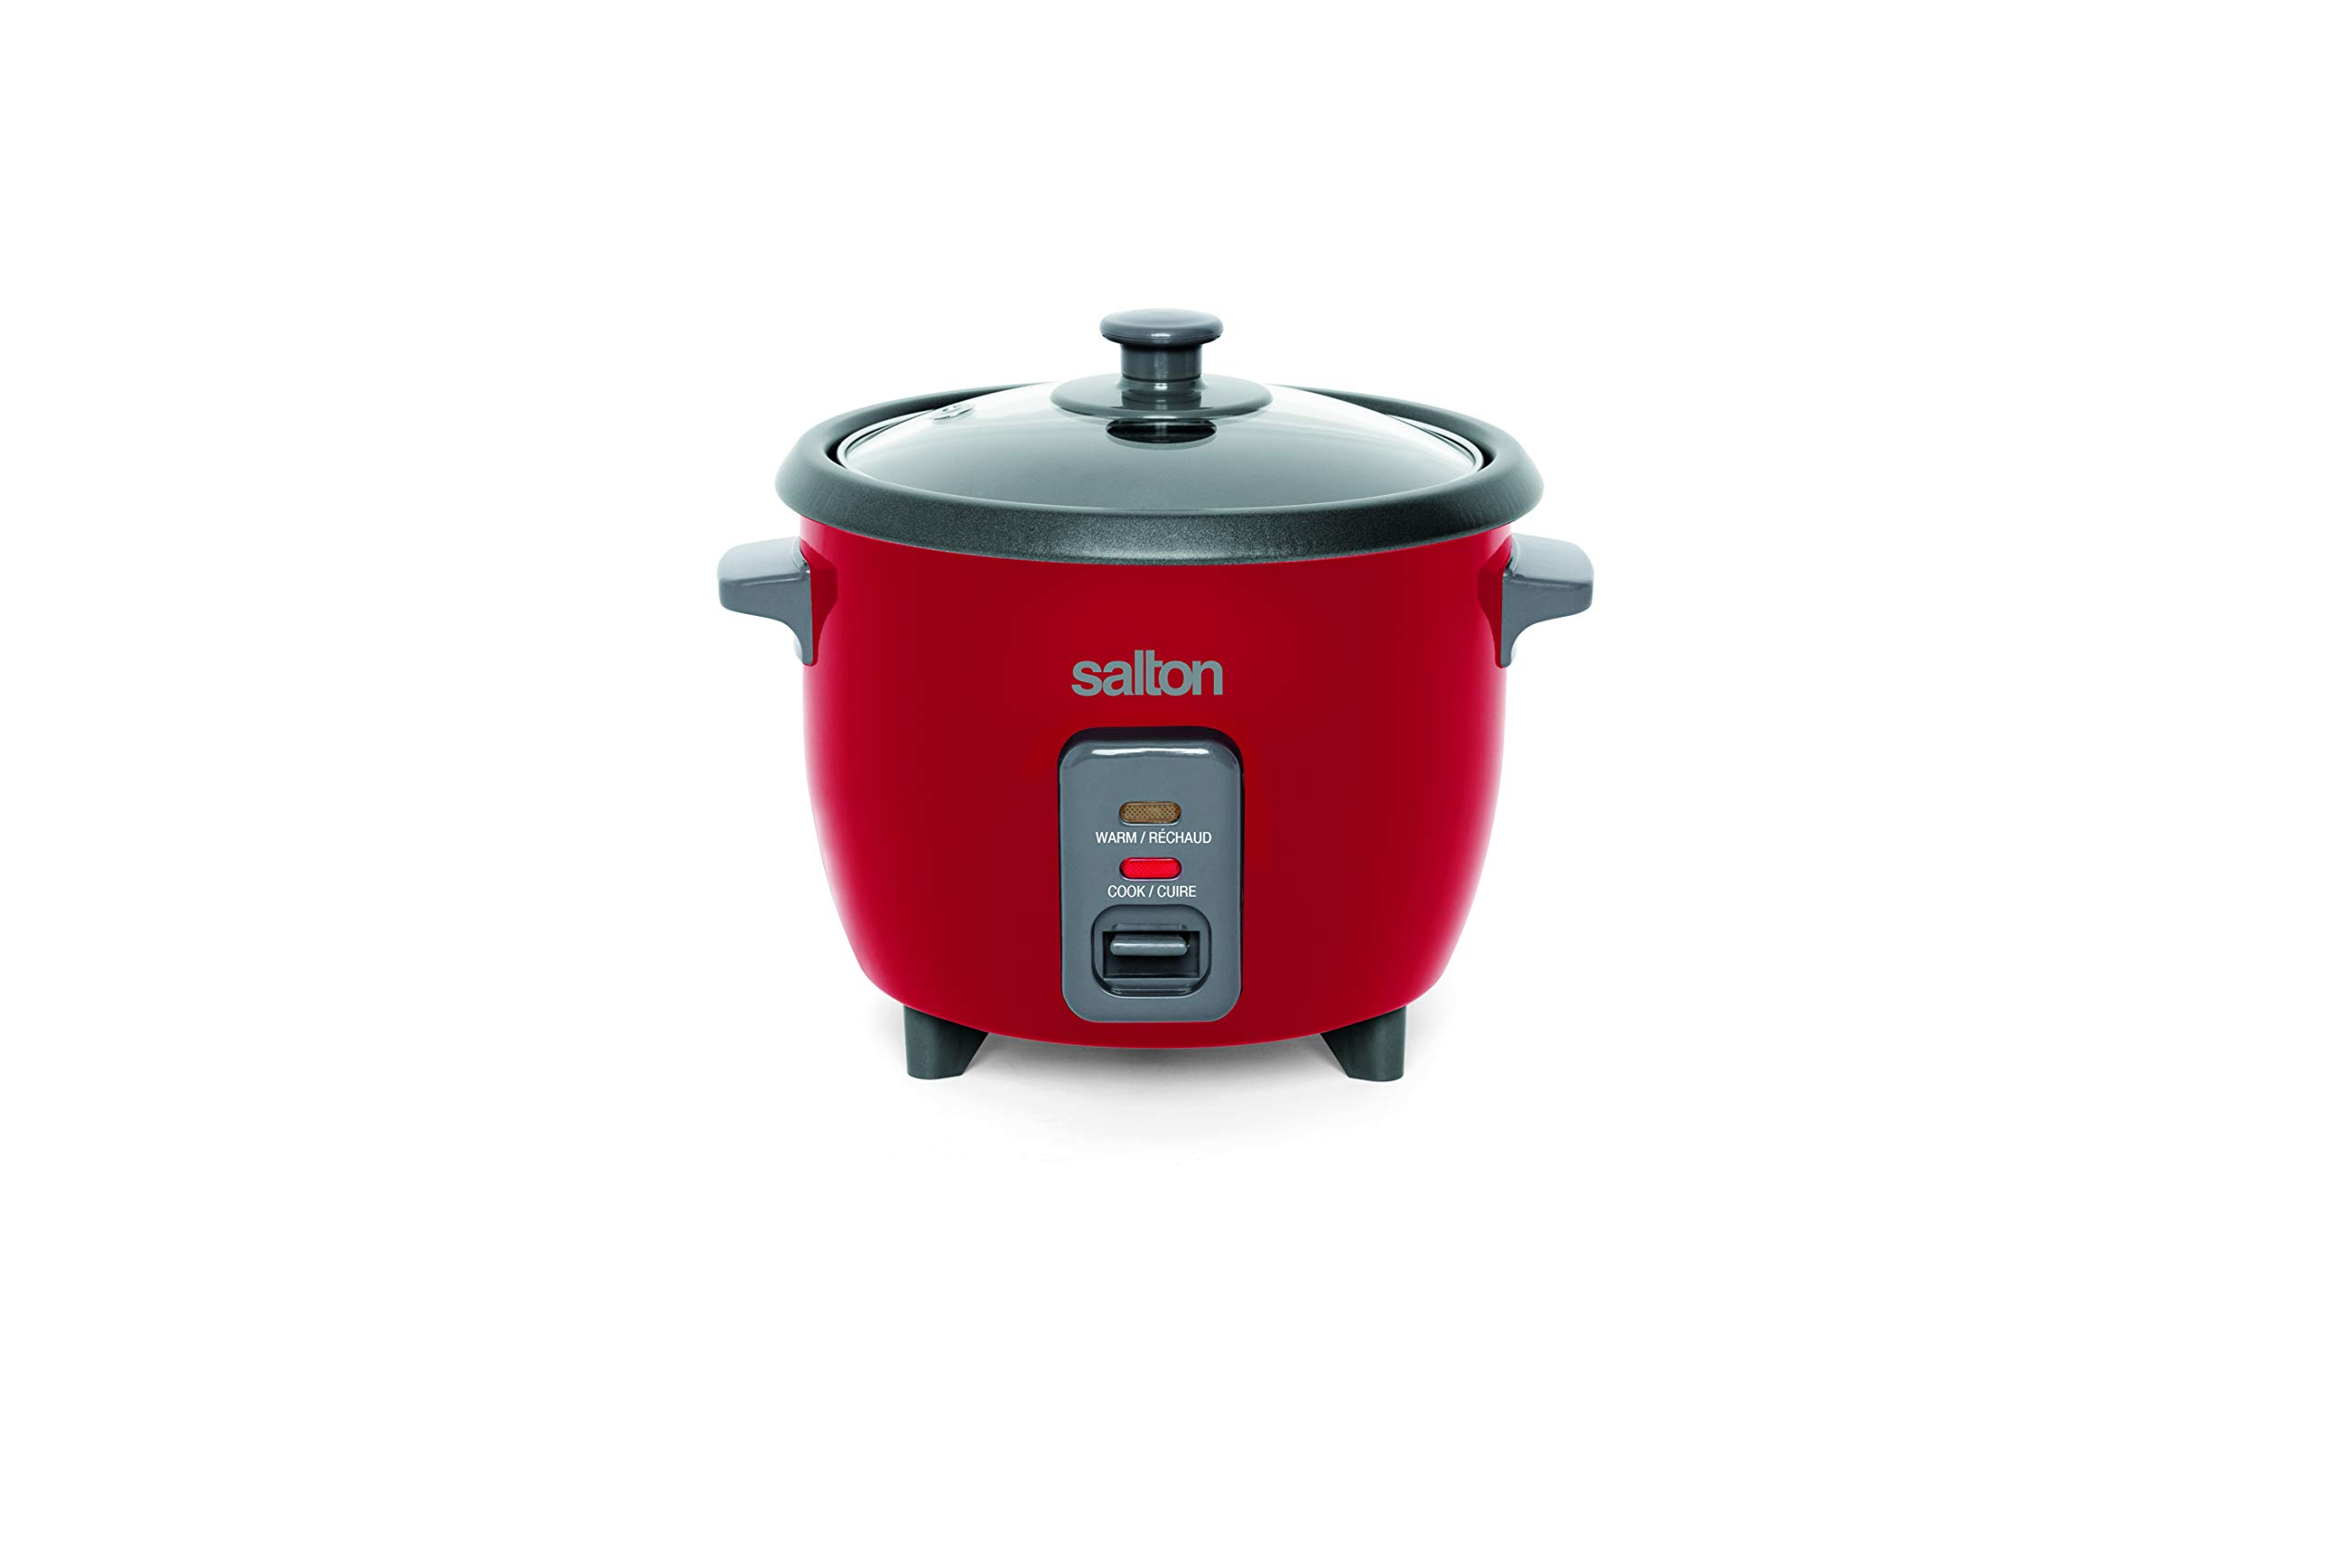 Salton RC1653R Automatic Steamer, 6 Cup Rice Cooker, Red